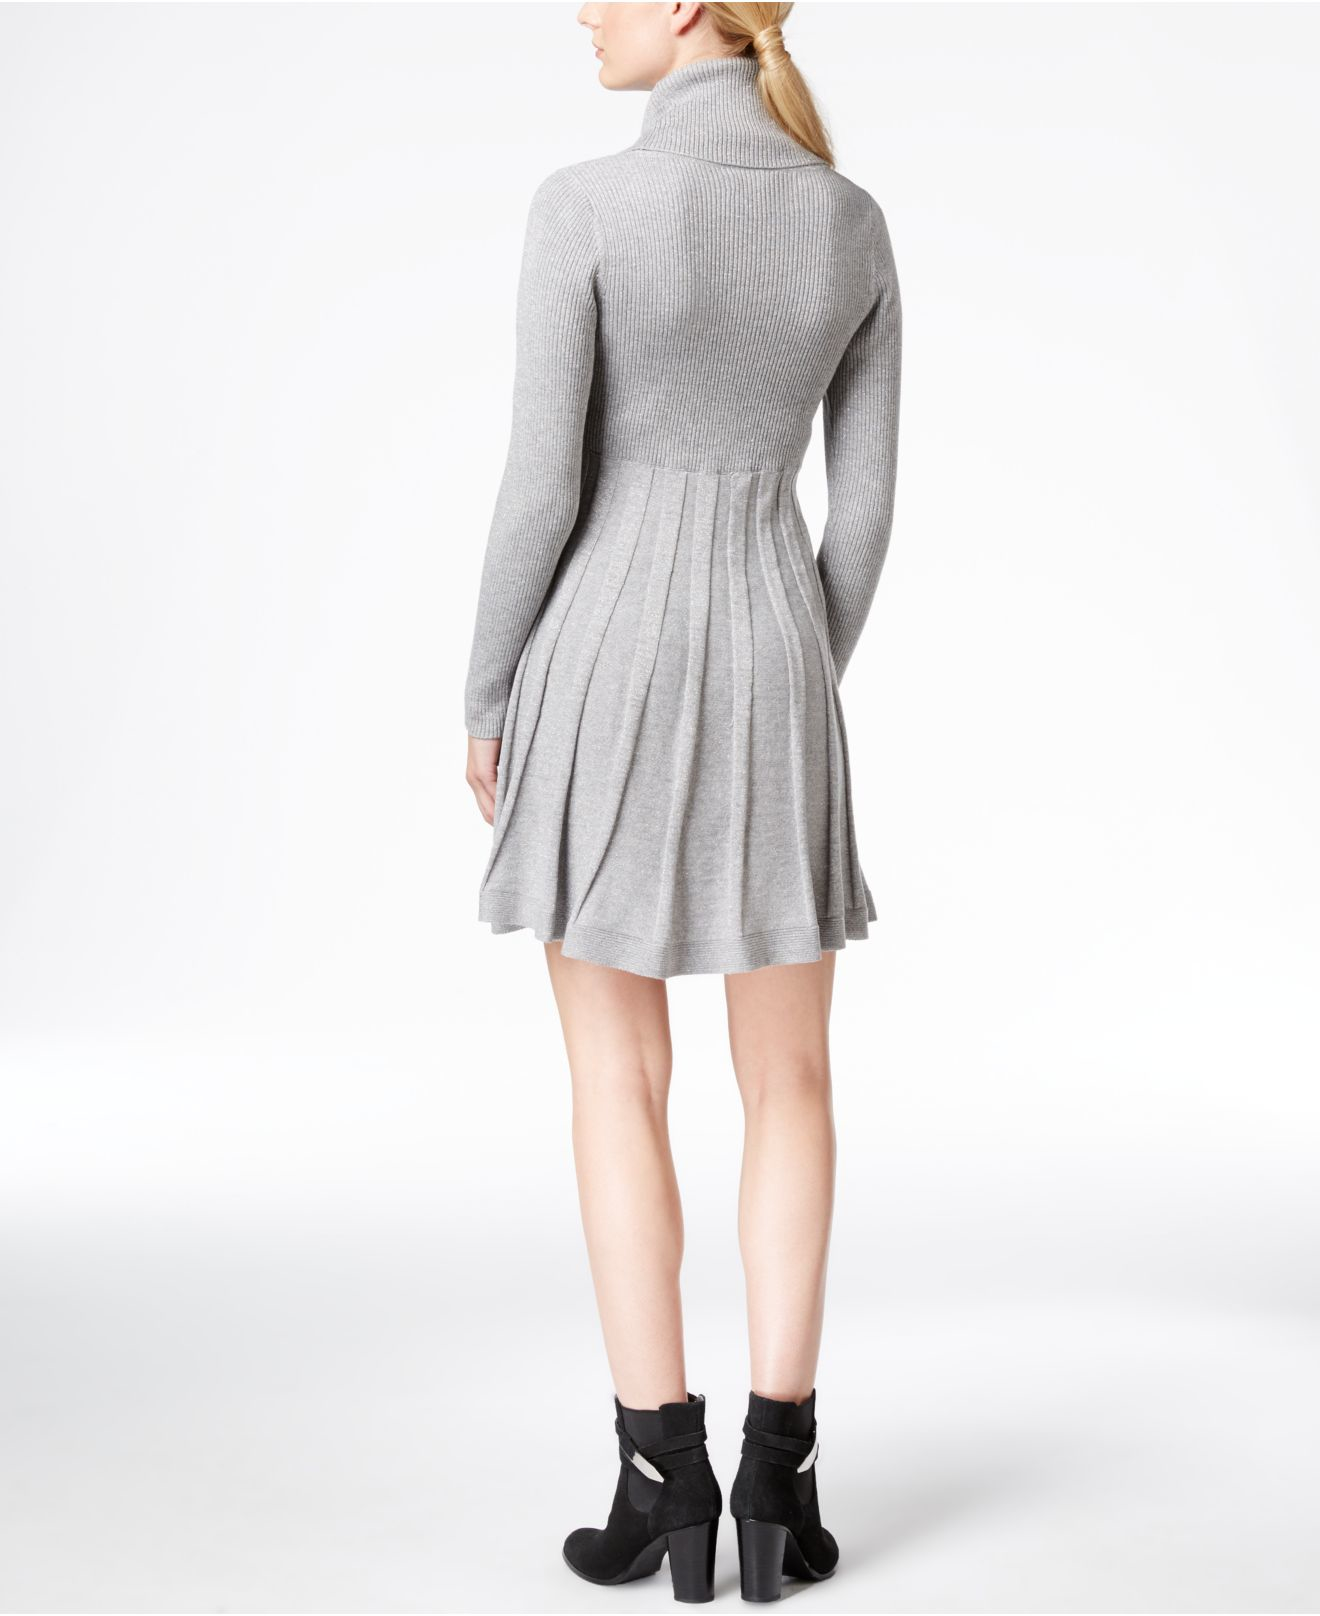 d8a1d85406 Calvin Klein Cowl-neck Fit   Flare Sweater Dress in Gray - Lyst